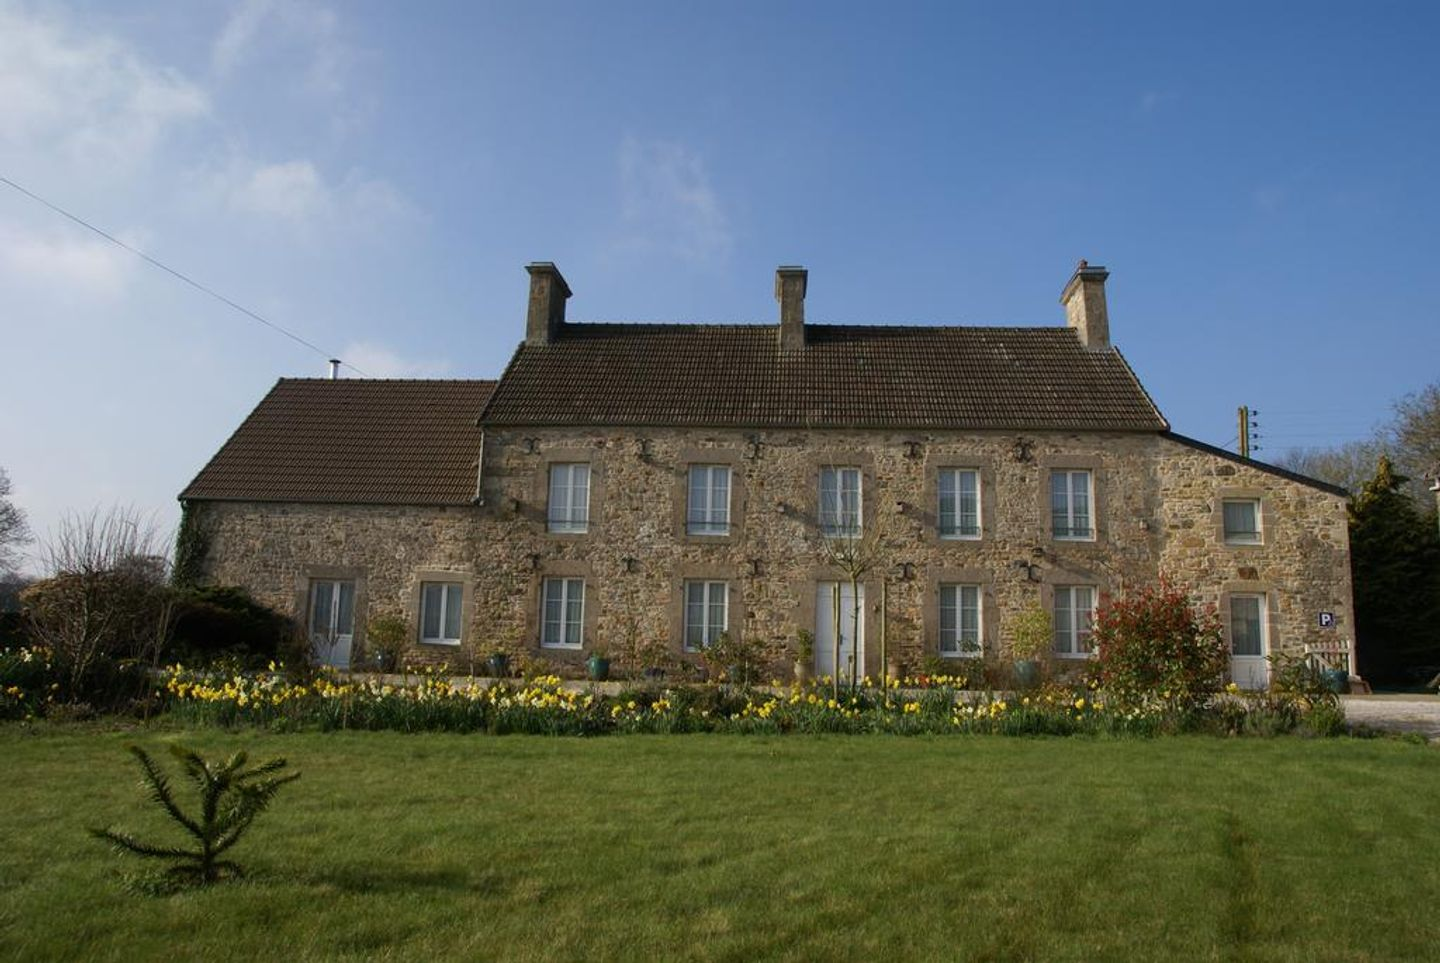 A large brick building with grass in front of a house with brice house in the background at Chambres d'hôtes La Laiterie.